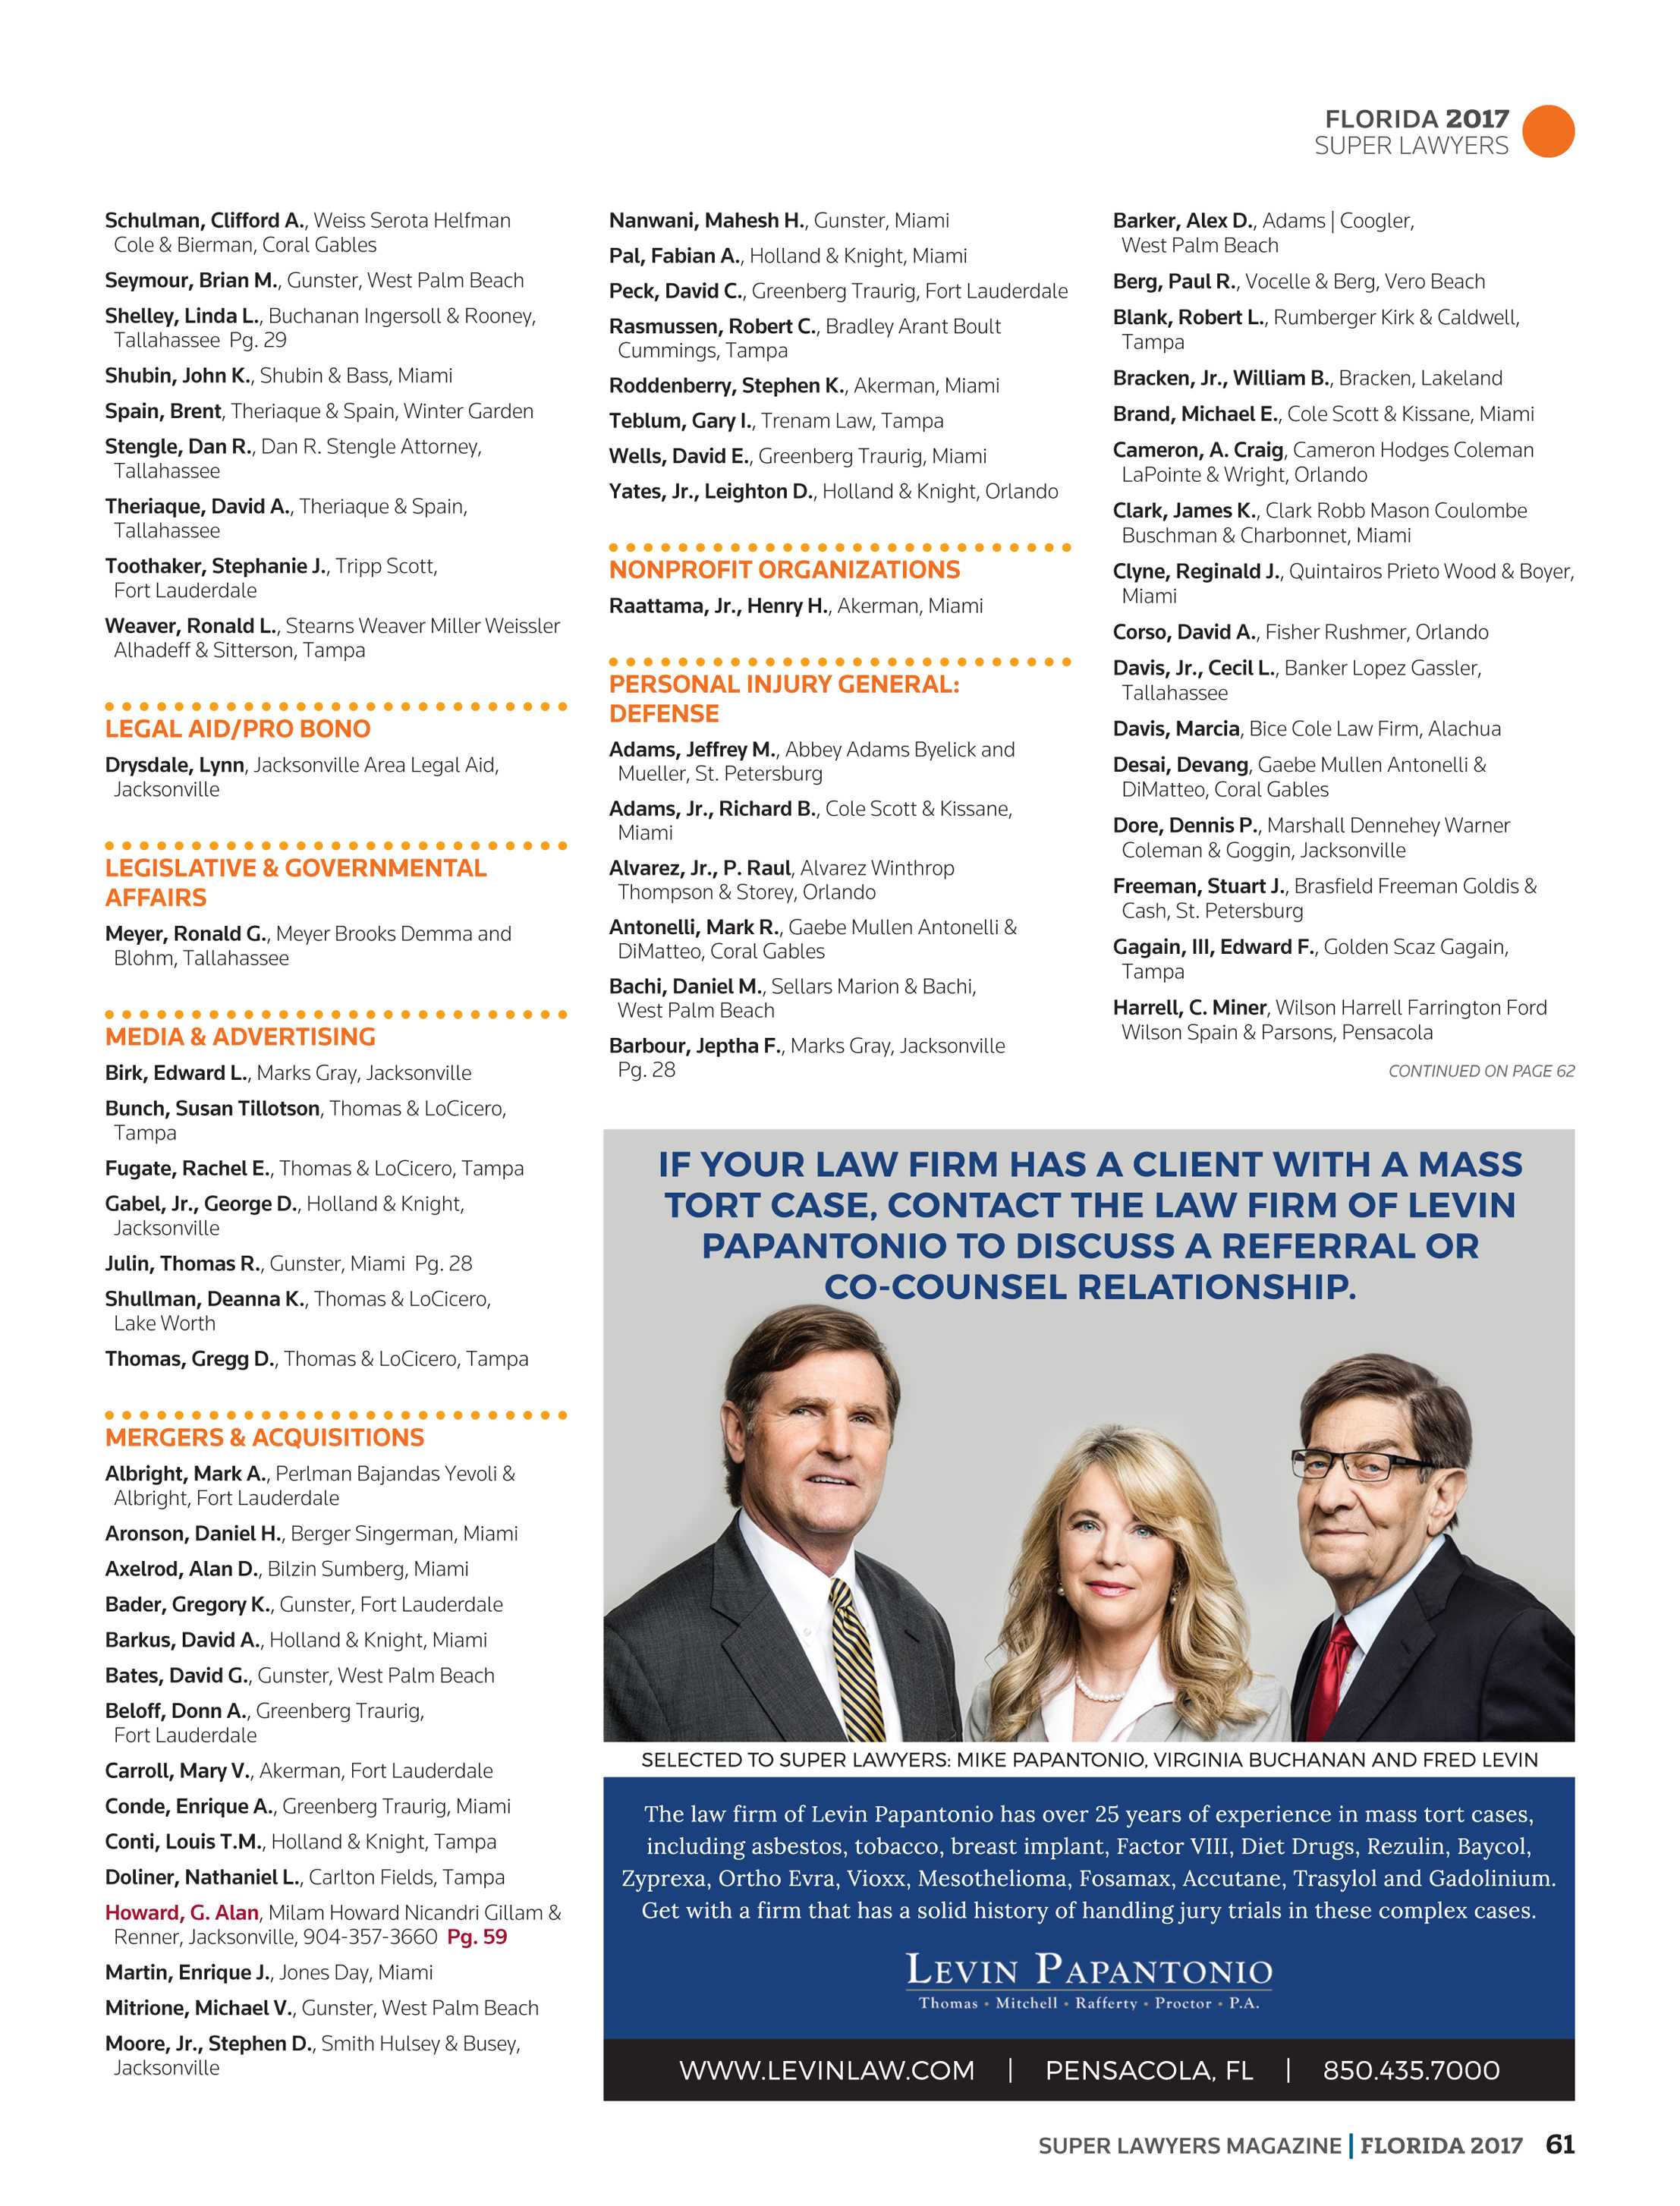 Super Lawyers Florida 2017 Page 61